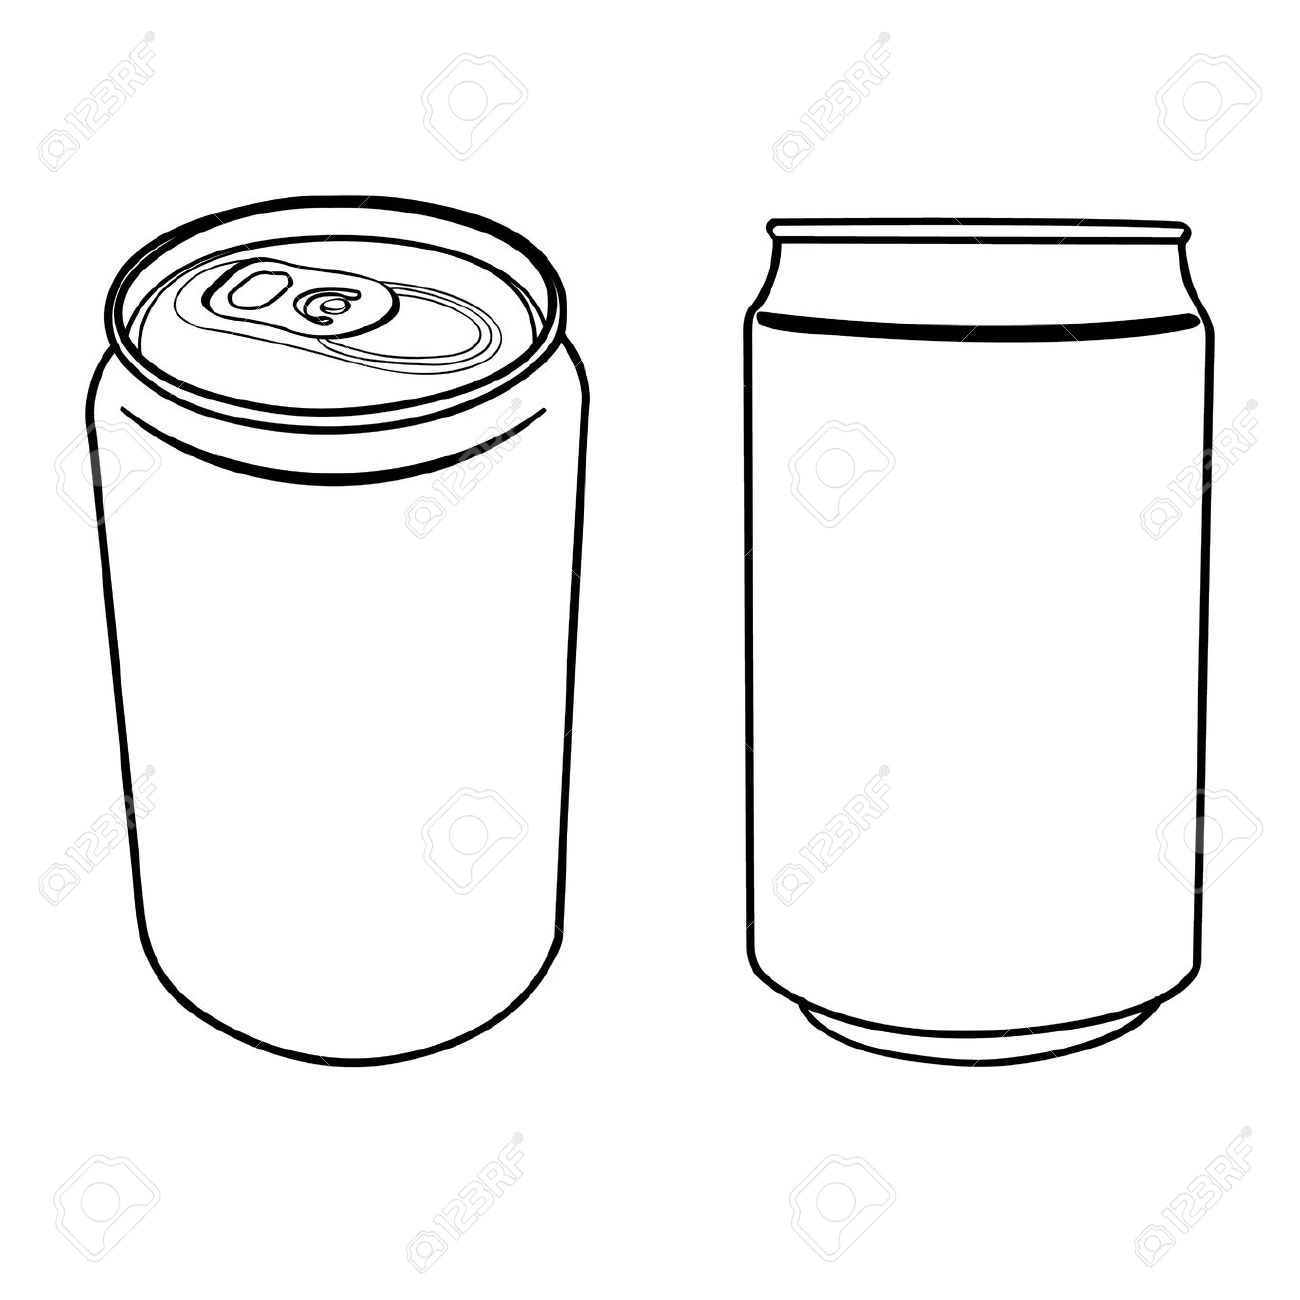 Beer Can Clipart And .. 246a458ee74869de-Beer Can Clipart And .. 246a458ee74869de8415857e54e506 .-12